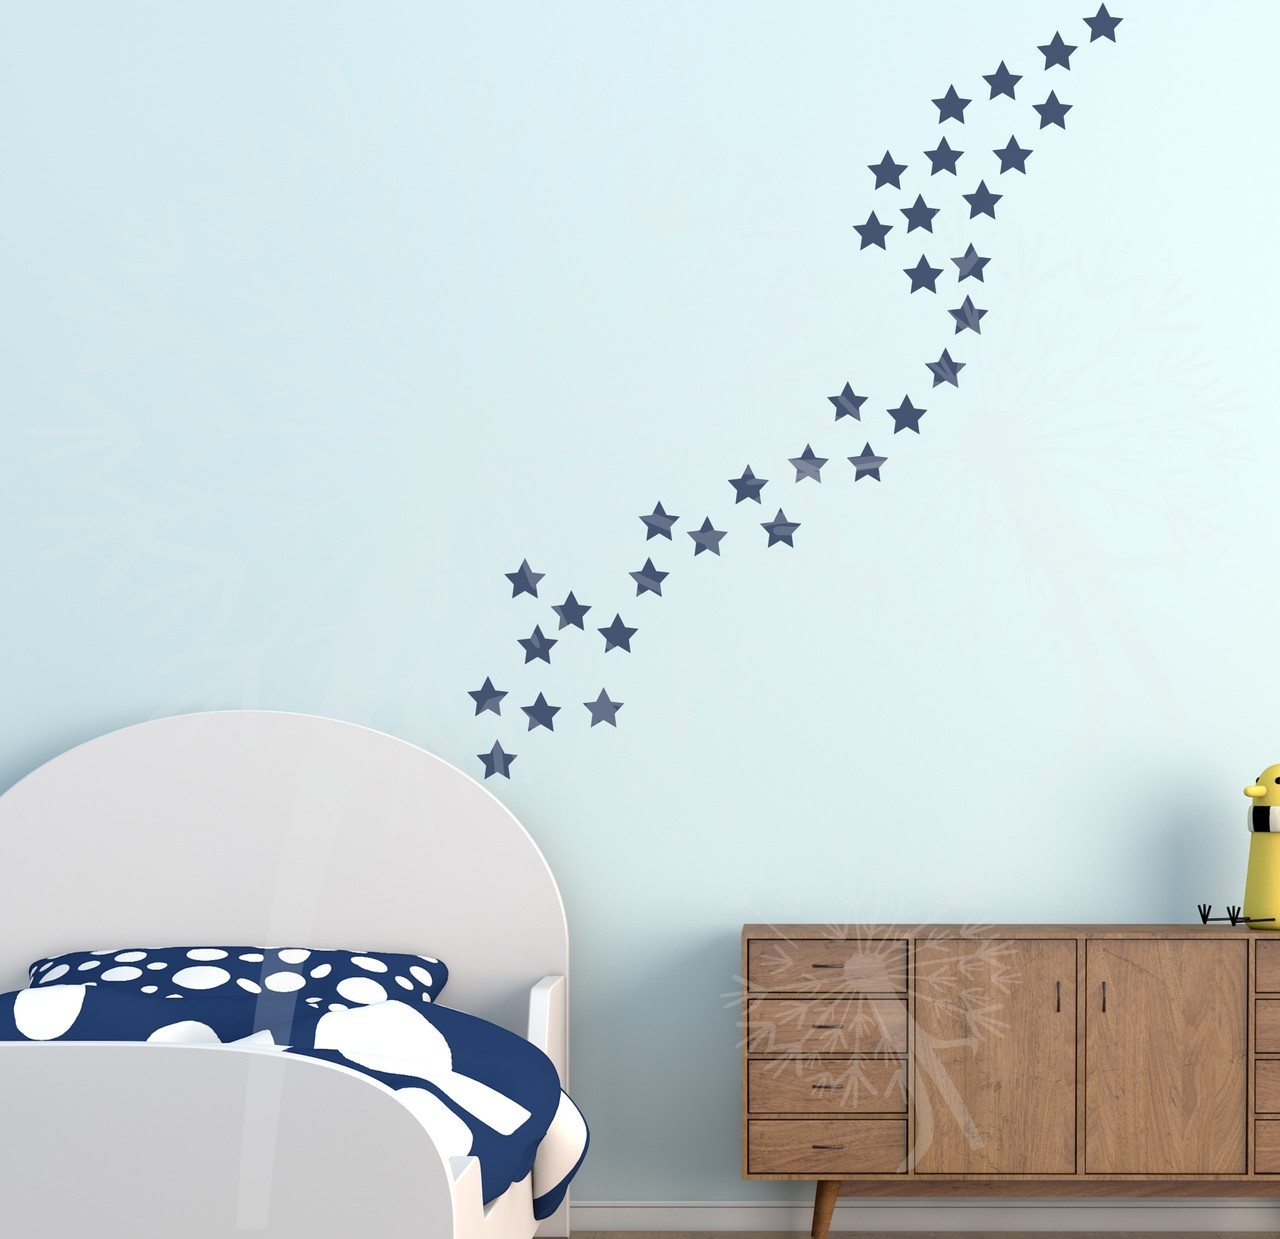 Wall Decals Stars Stars Home Wall Home Decor Star Stickers Decal